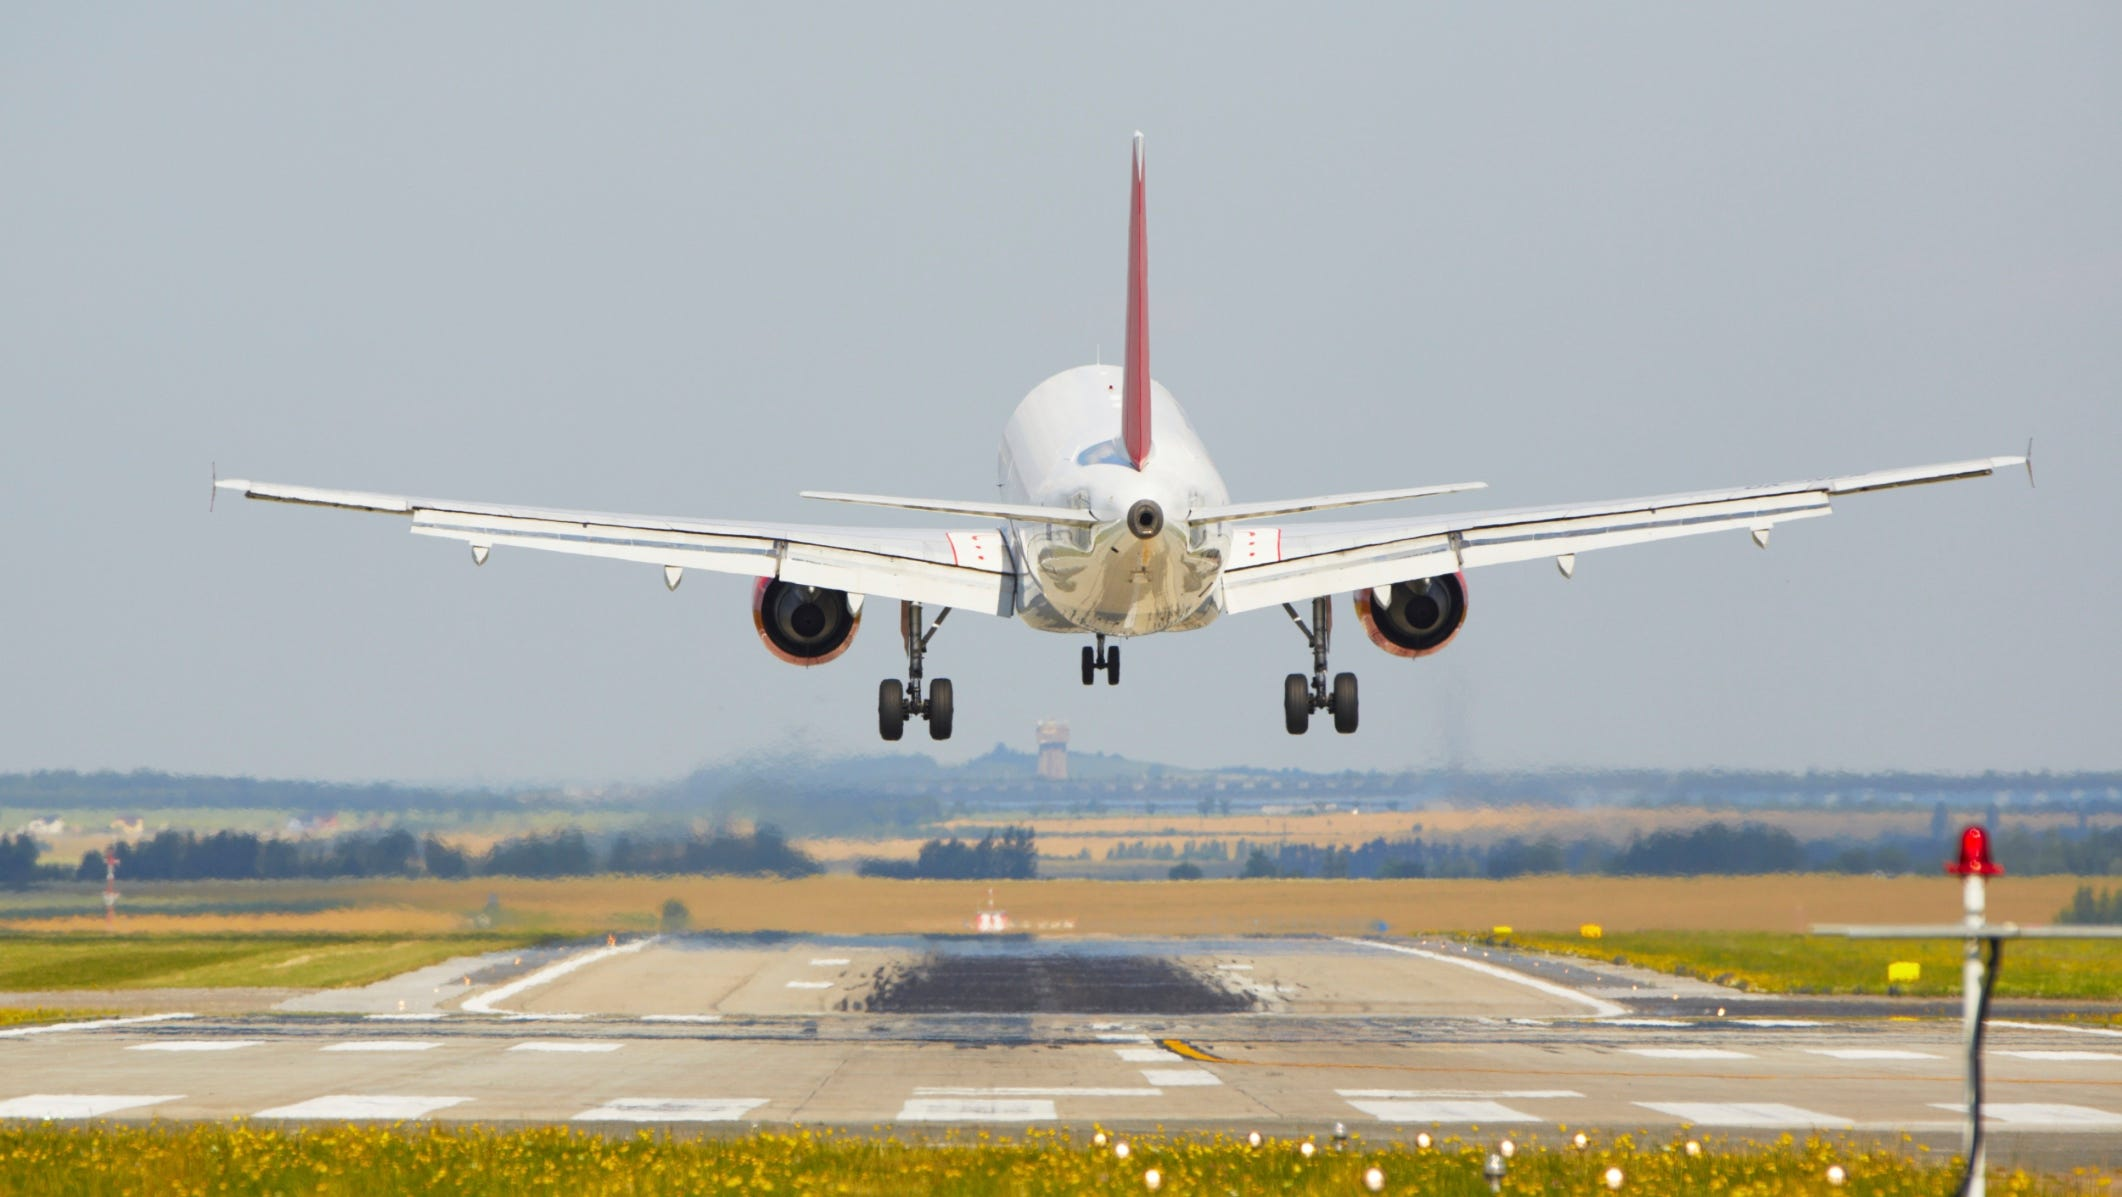 Ask The Captain The Challenges Of Landing In Crosswinds